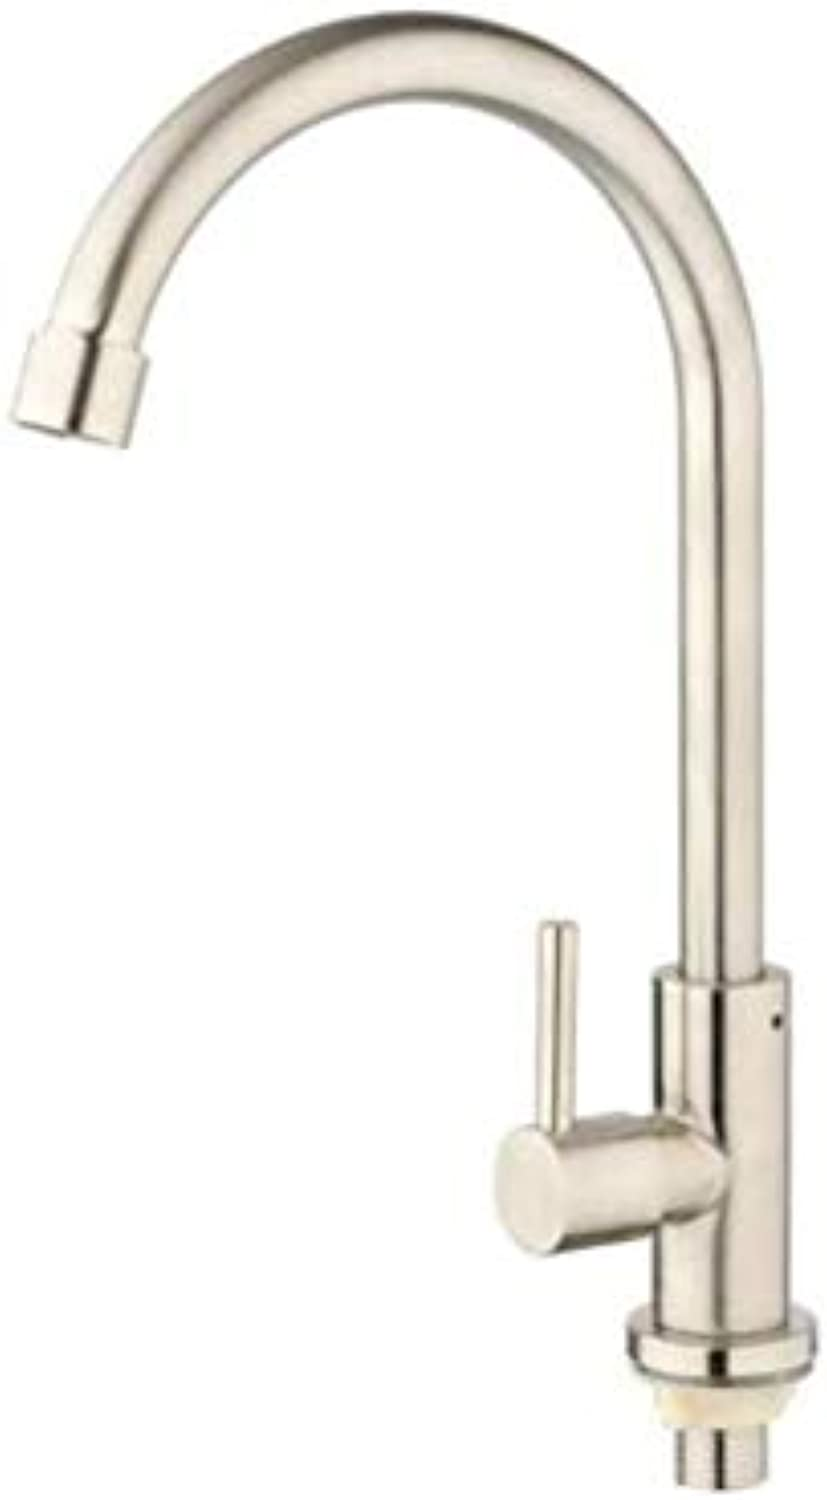 Taps Kitchen Sinktaps Mixer Swivel Faucet Sink Kitchen Faucet Cold and Hot Water Sink Surface Basin